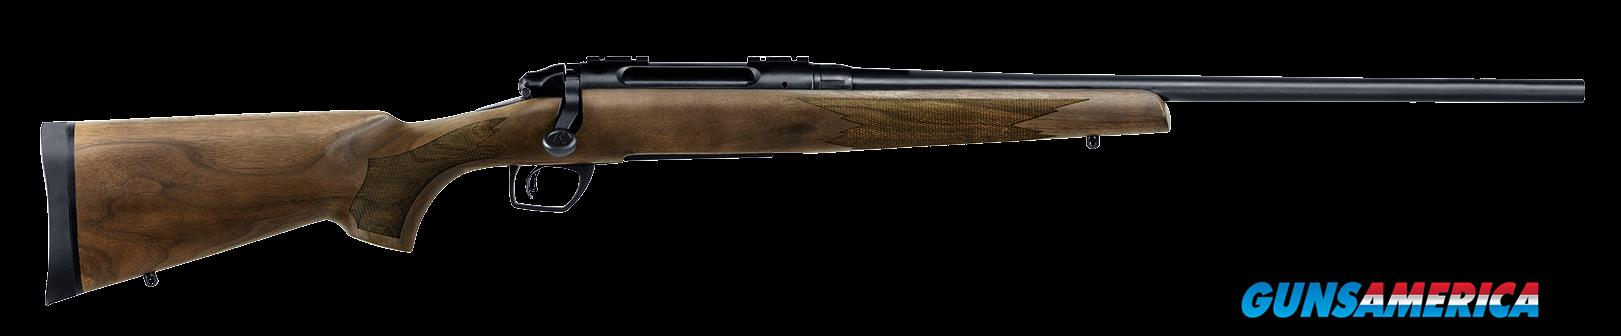 "Remington Firearms 85874 783 Detach Mag Bolt 308 Winchester/7.62 NATO 22"" 4+1 American Walnut Stk  Guns > Rifles > R Misc Rifles"